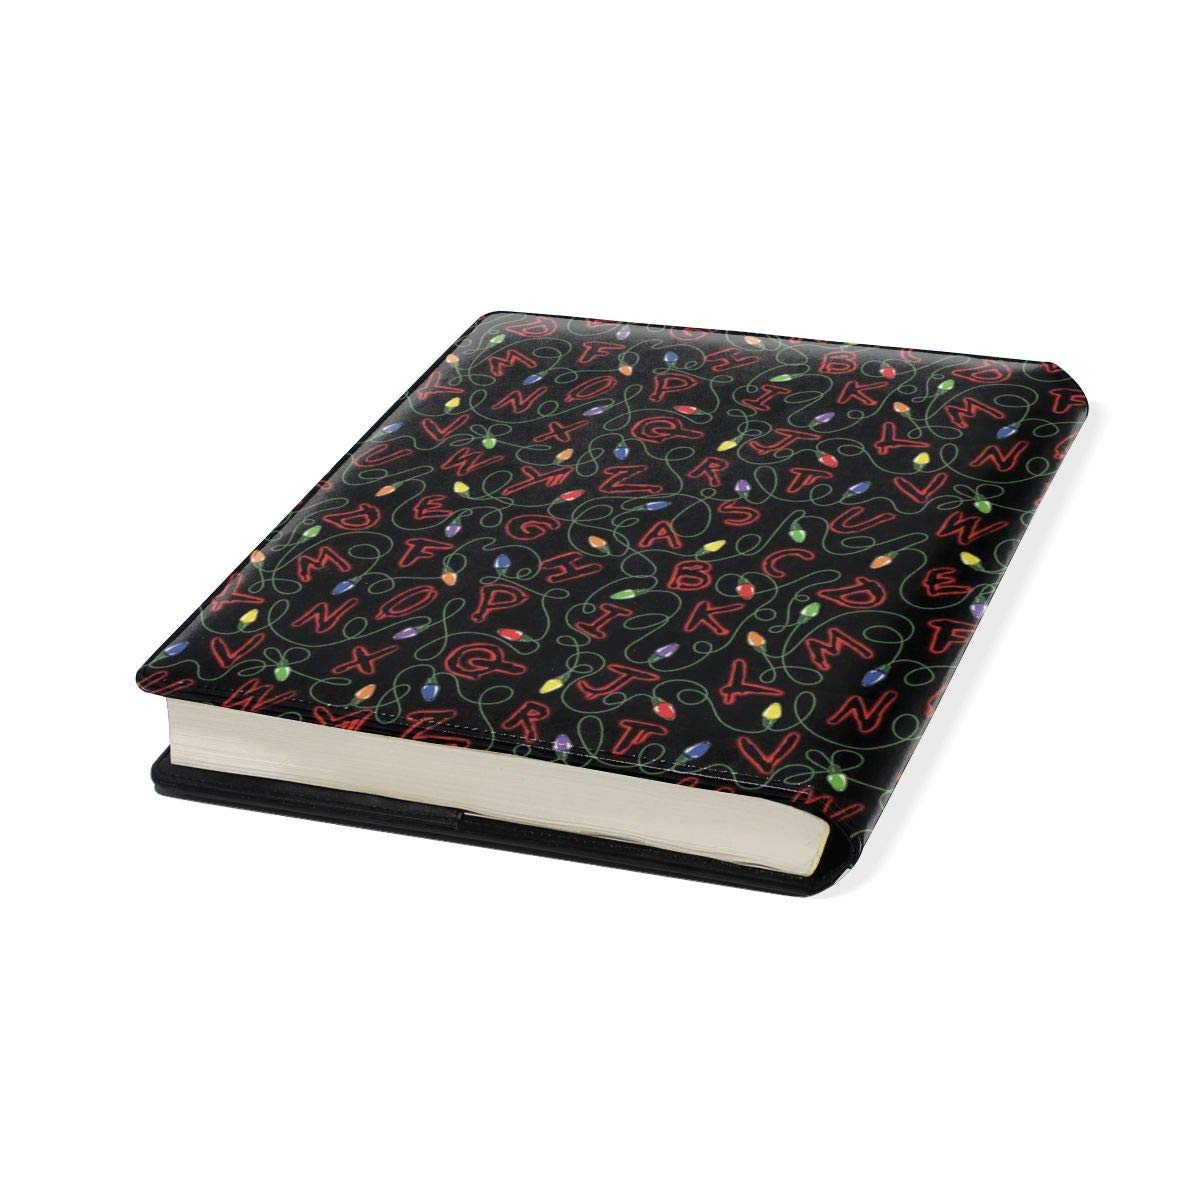 Stranger Things Jumbo Book Covers Fits Most Hardcover Textbooks Up to 9X 11 for Students PU Leather Washable and Reusable